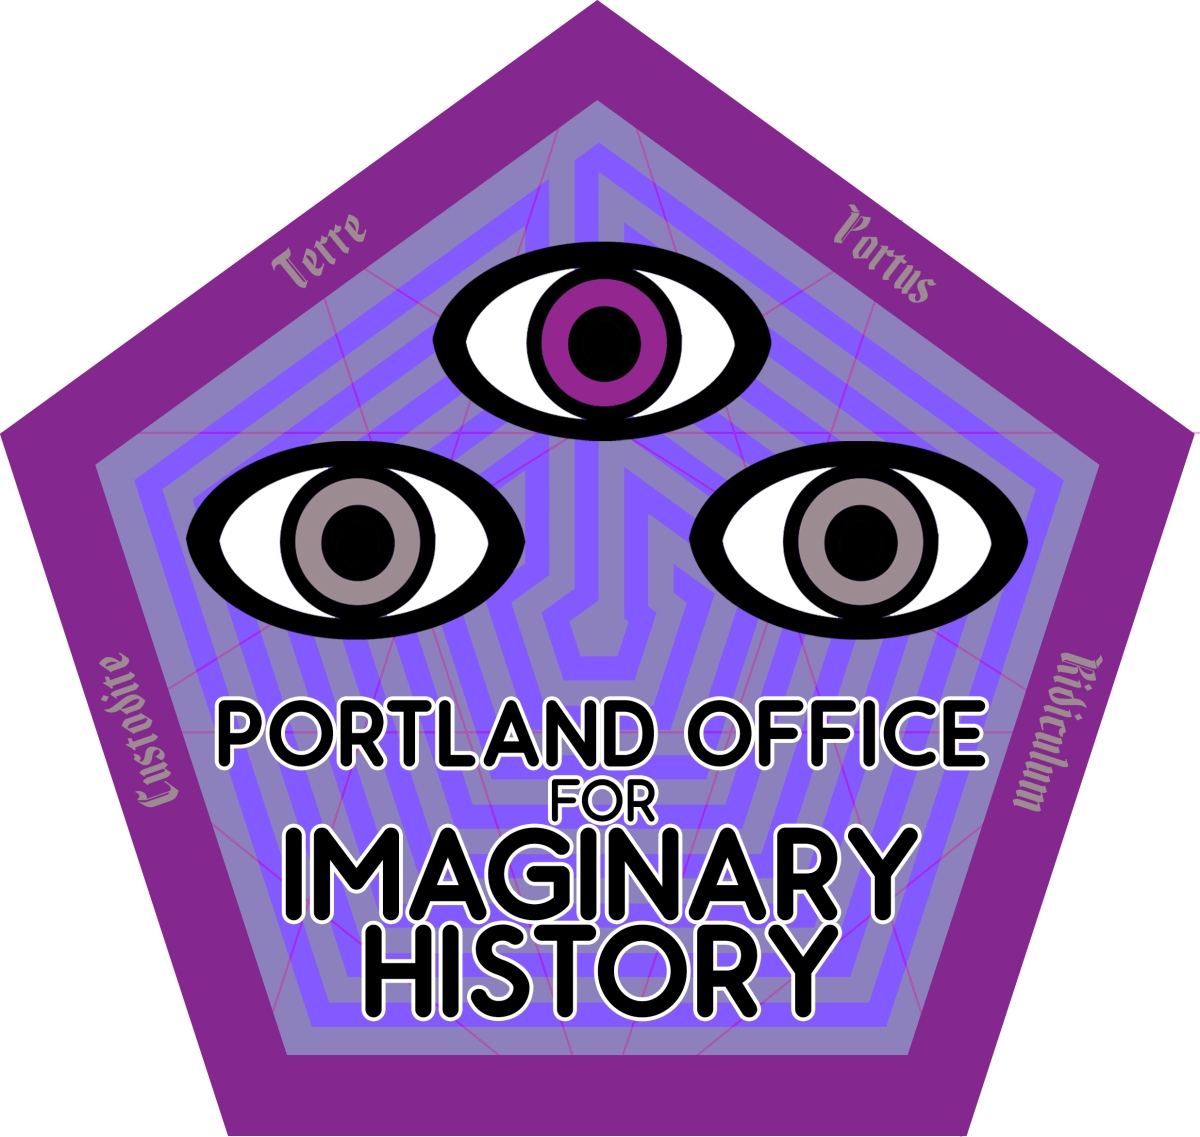 The Portland Office for Imaginary History 2018